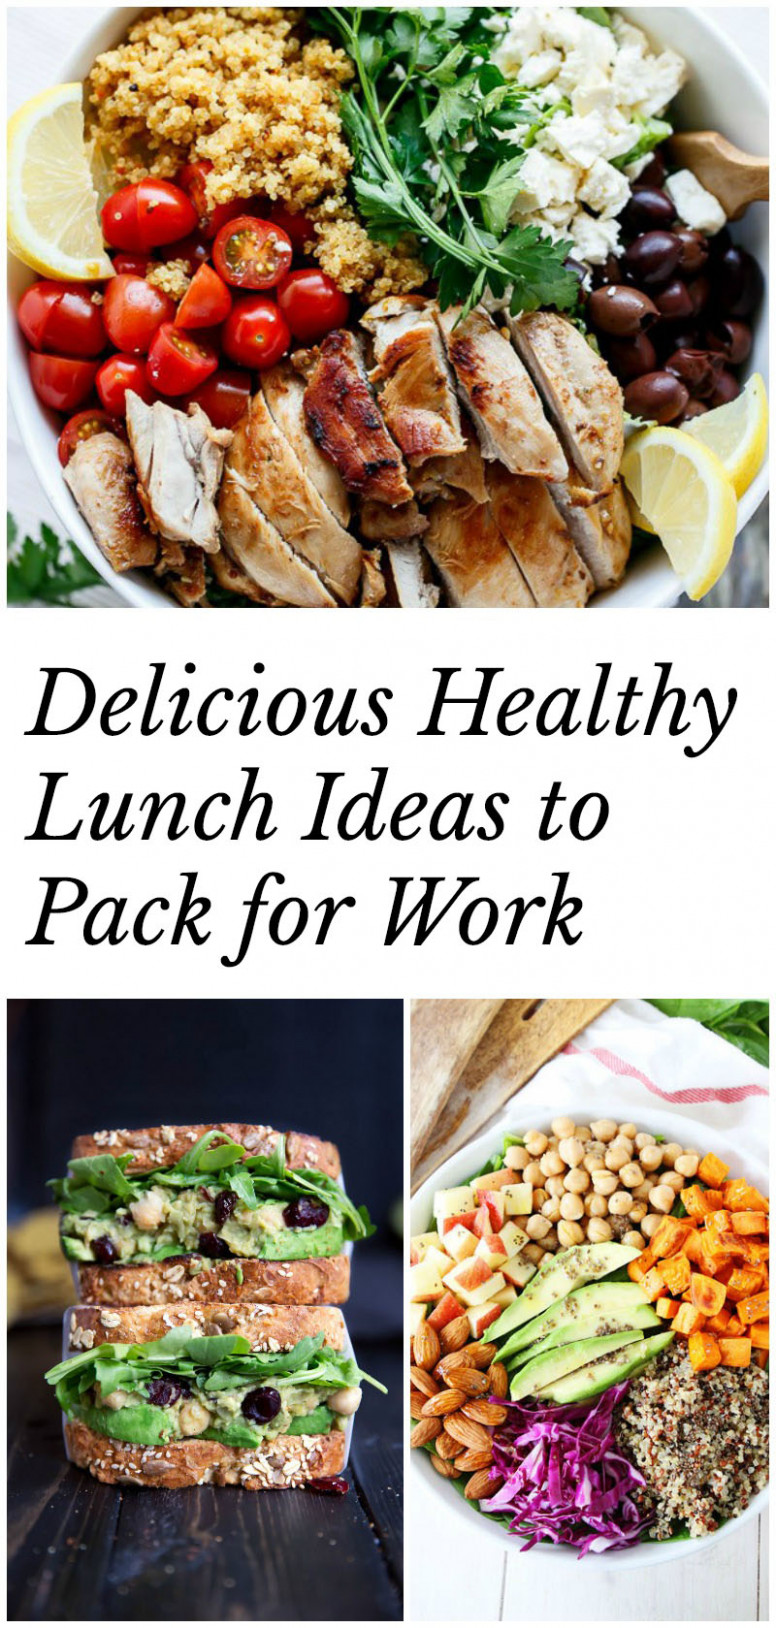 Healthy Lunch Ideas to Pack for Work (40+ recipes!) - recipes lunch healthy